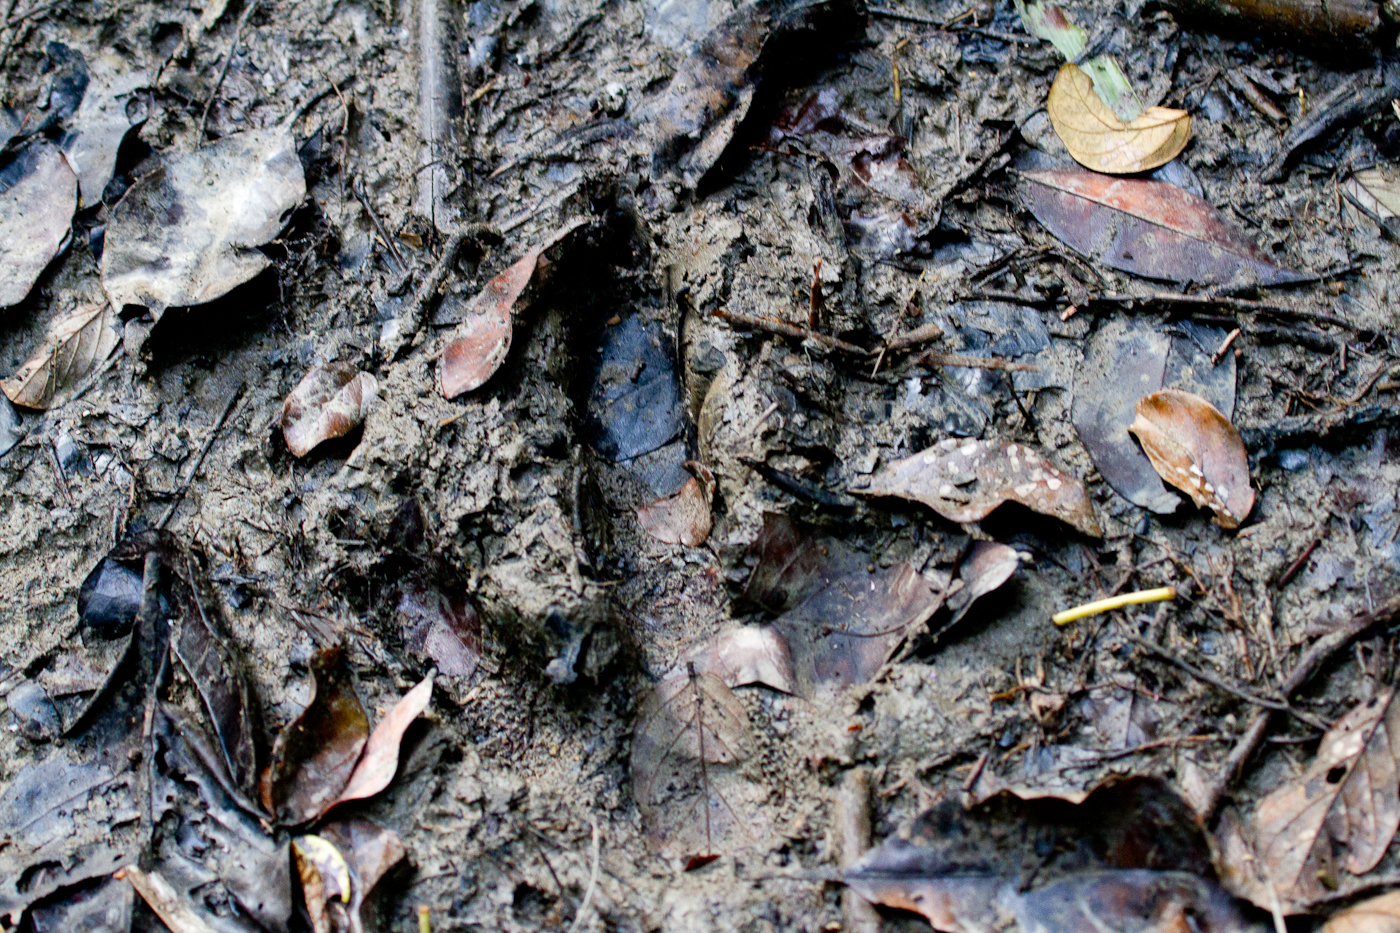 Cassowary print, the 'yeti of birds', Nimbokrang, Papua